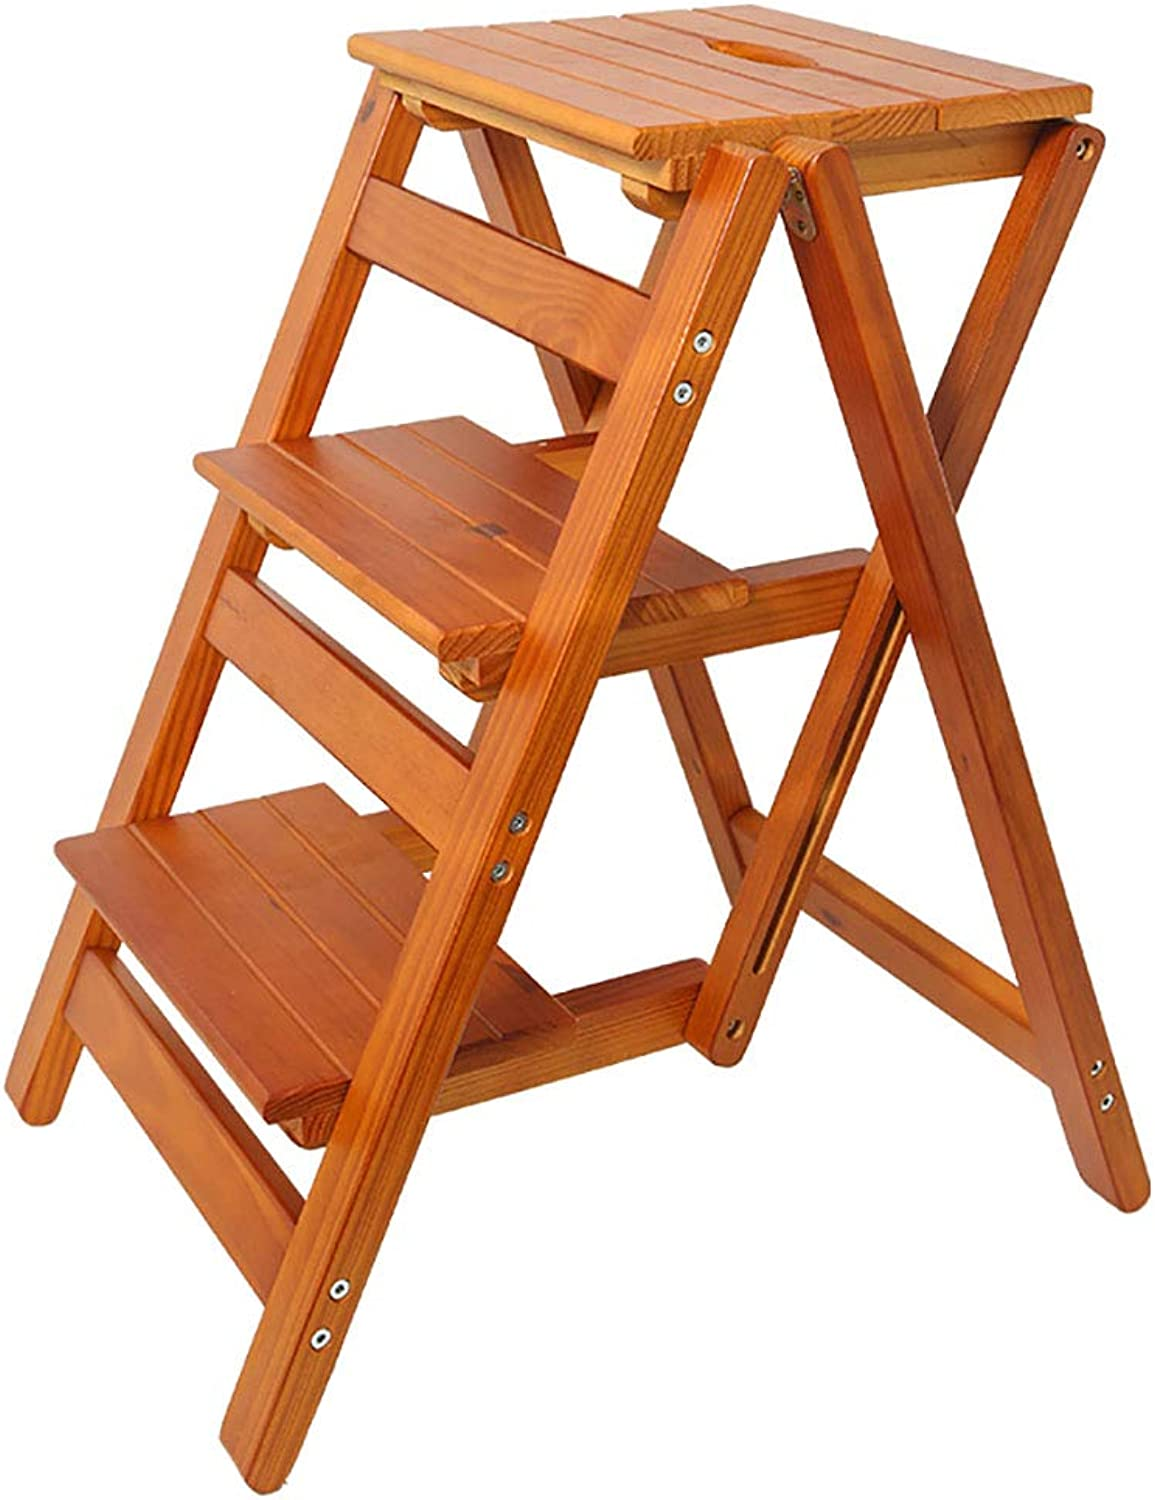 Step Stool Step Ladder Chair Home Folding Chair Stool (Size   B)